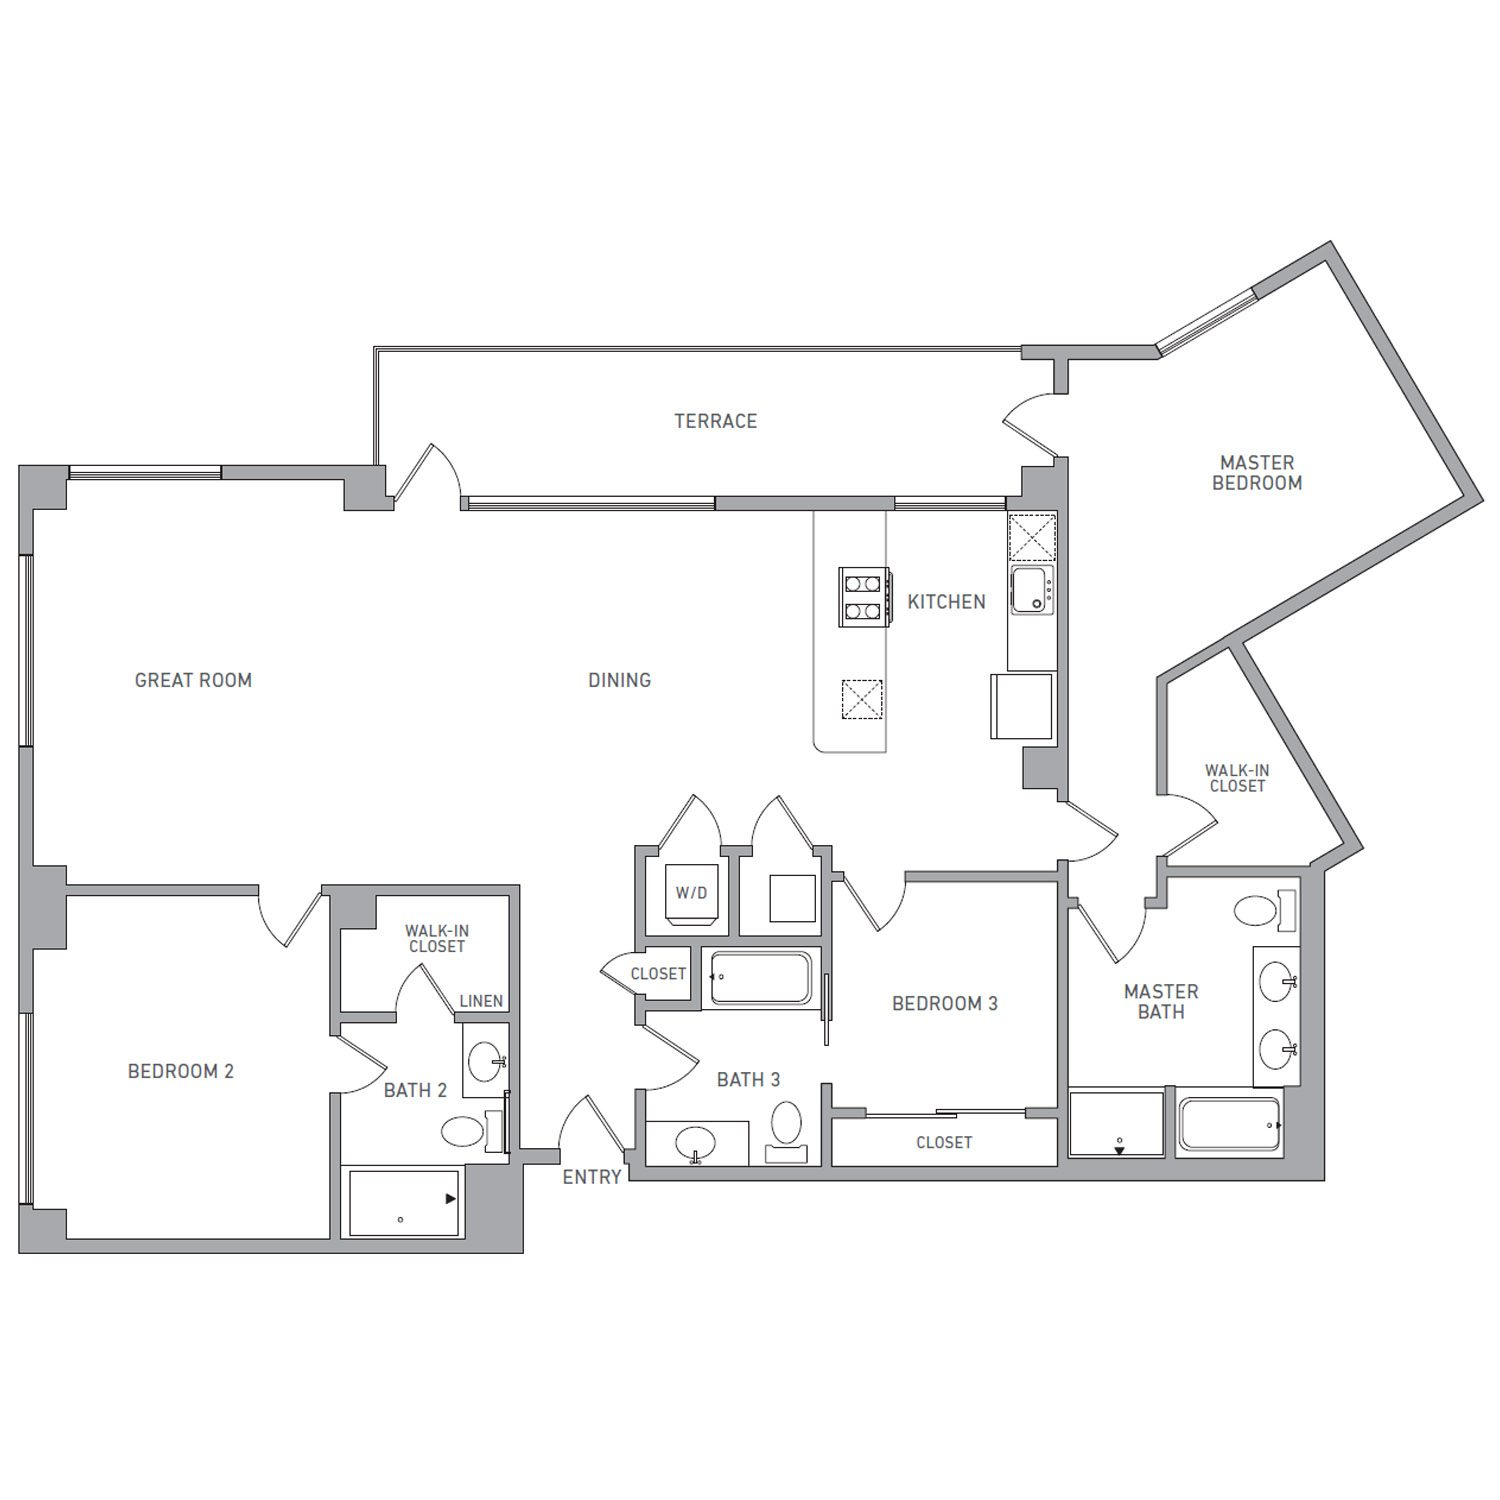 P H 200 floor plan diagram. Penthouse apartment with three bedrooms, three bathrooms, an open kitchen dining and living area, a terrace, and a washer dryer.